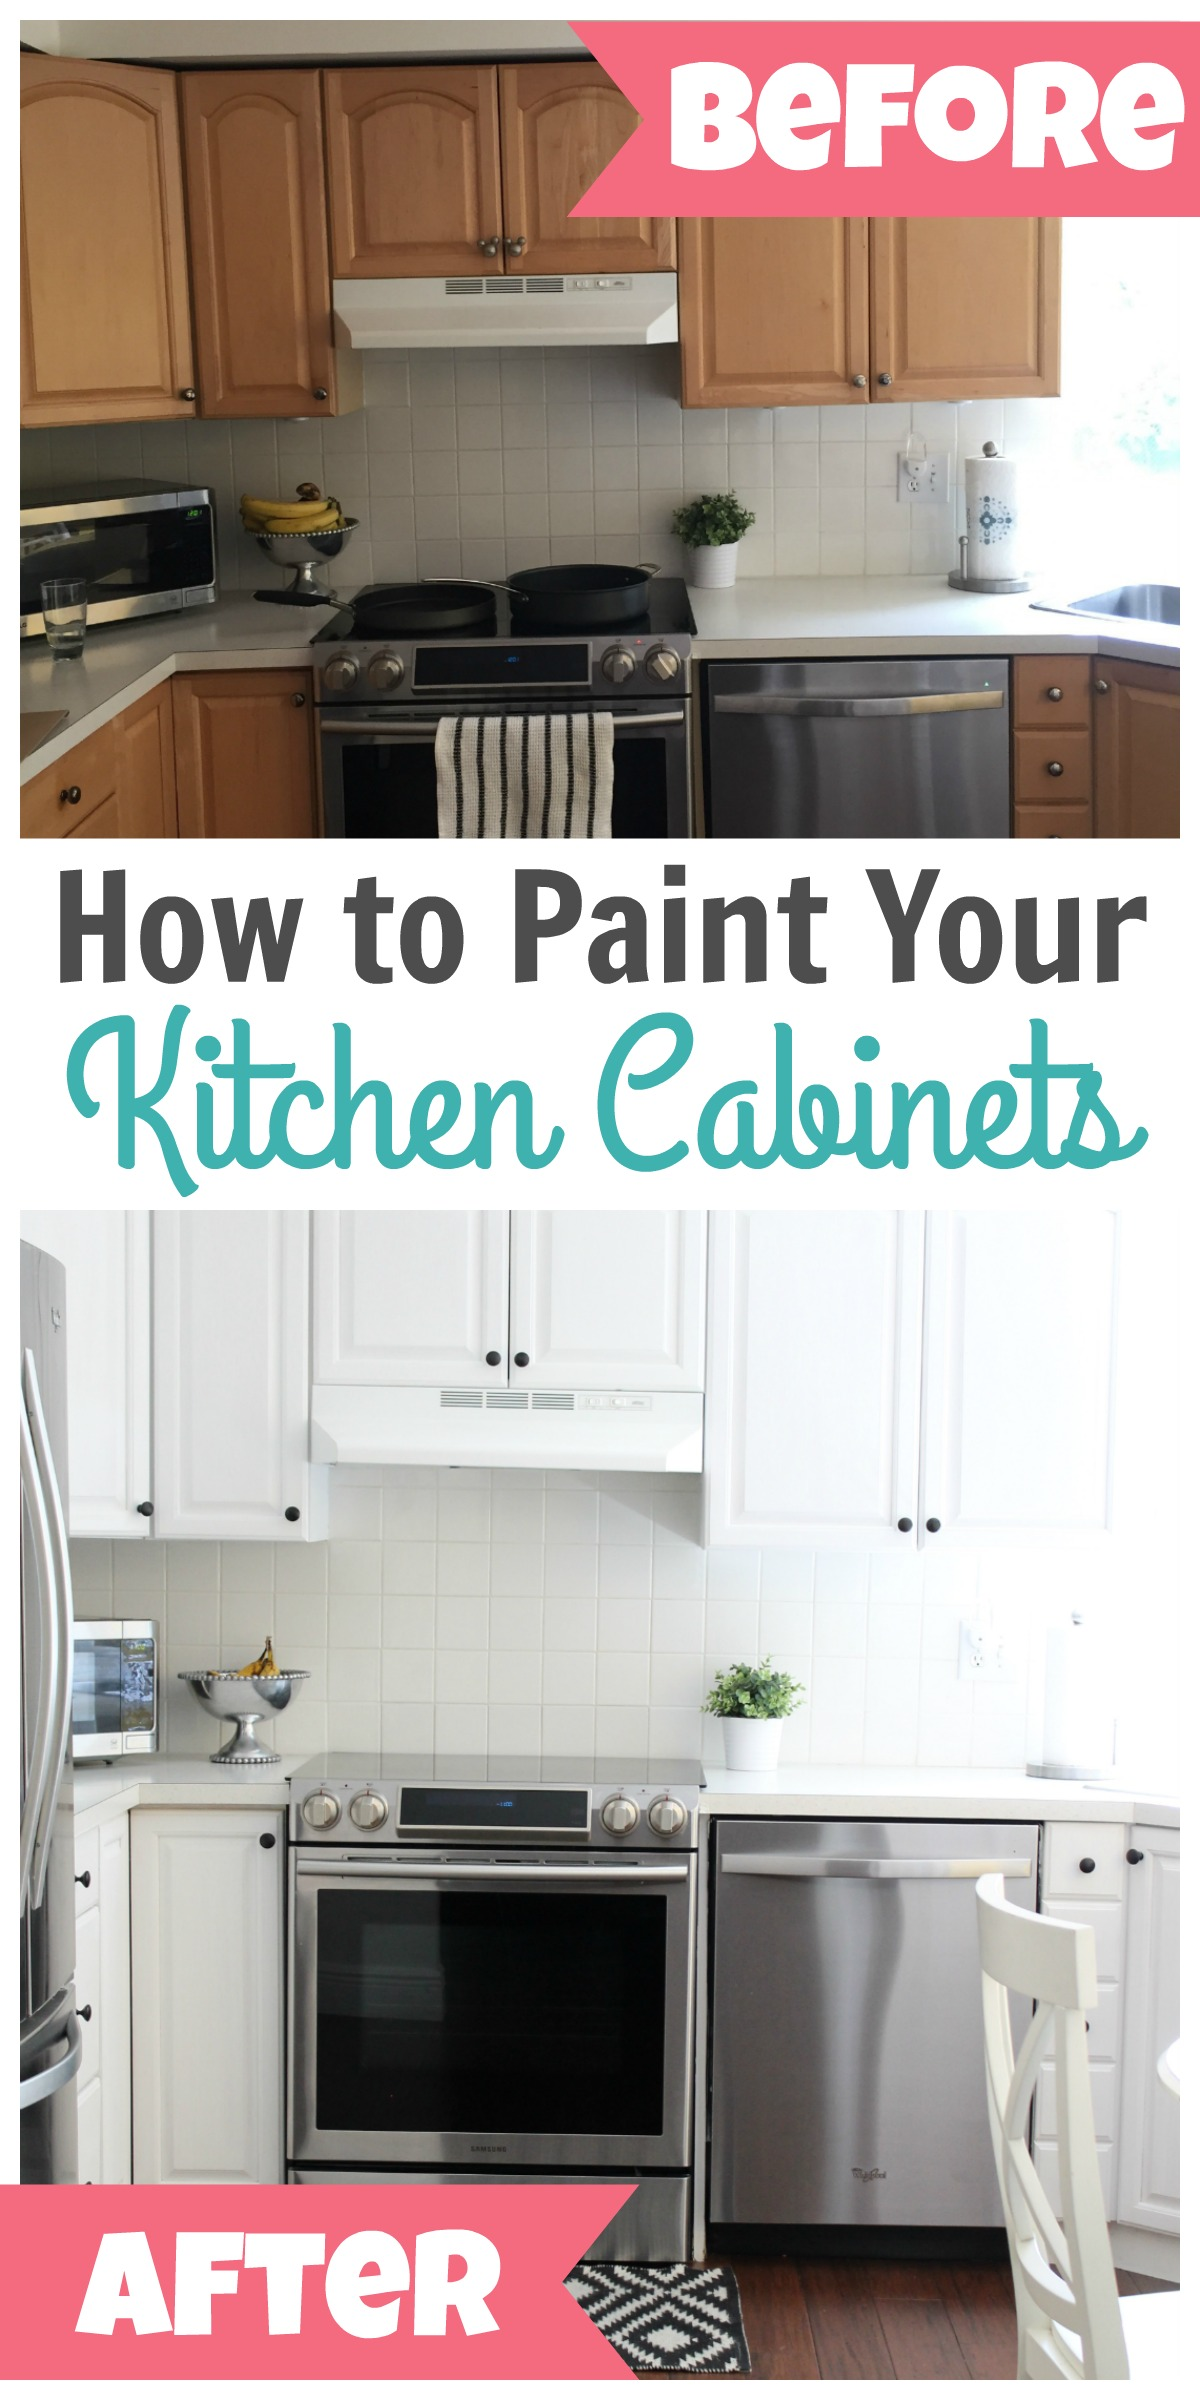 hot to paint kitchen cabinets beautiful home depot cabinet paint kit insured by ross 16626